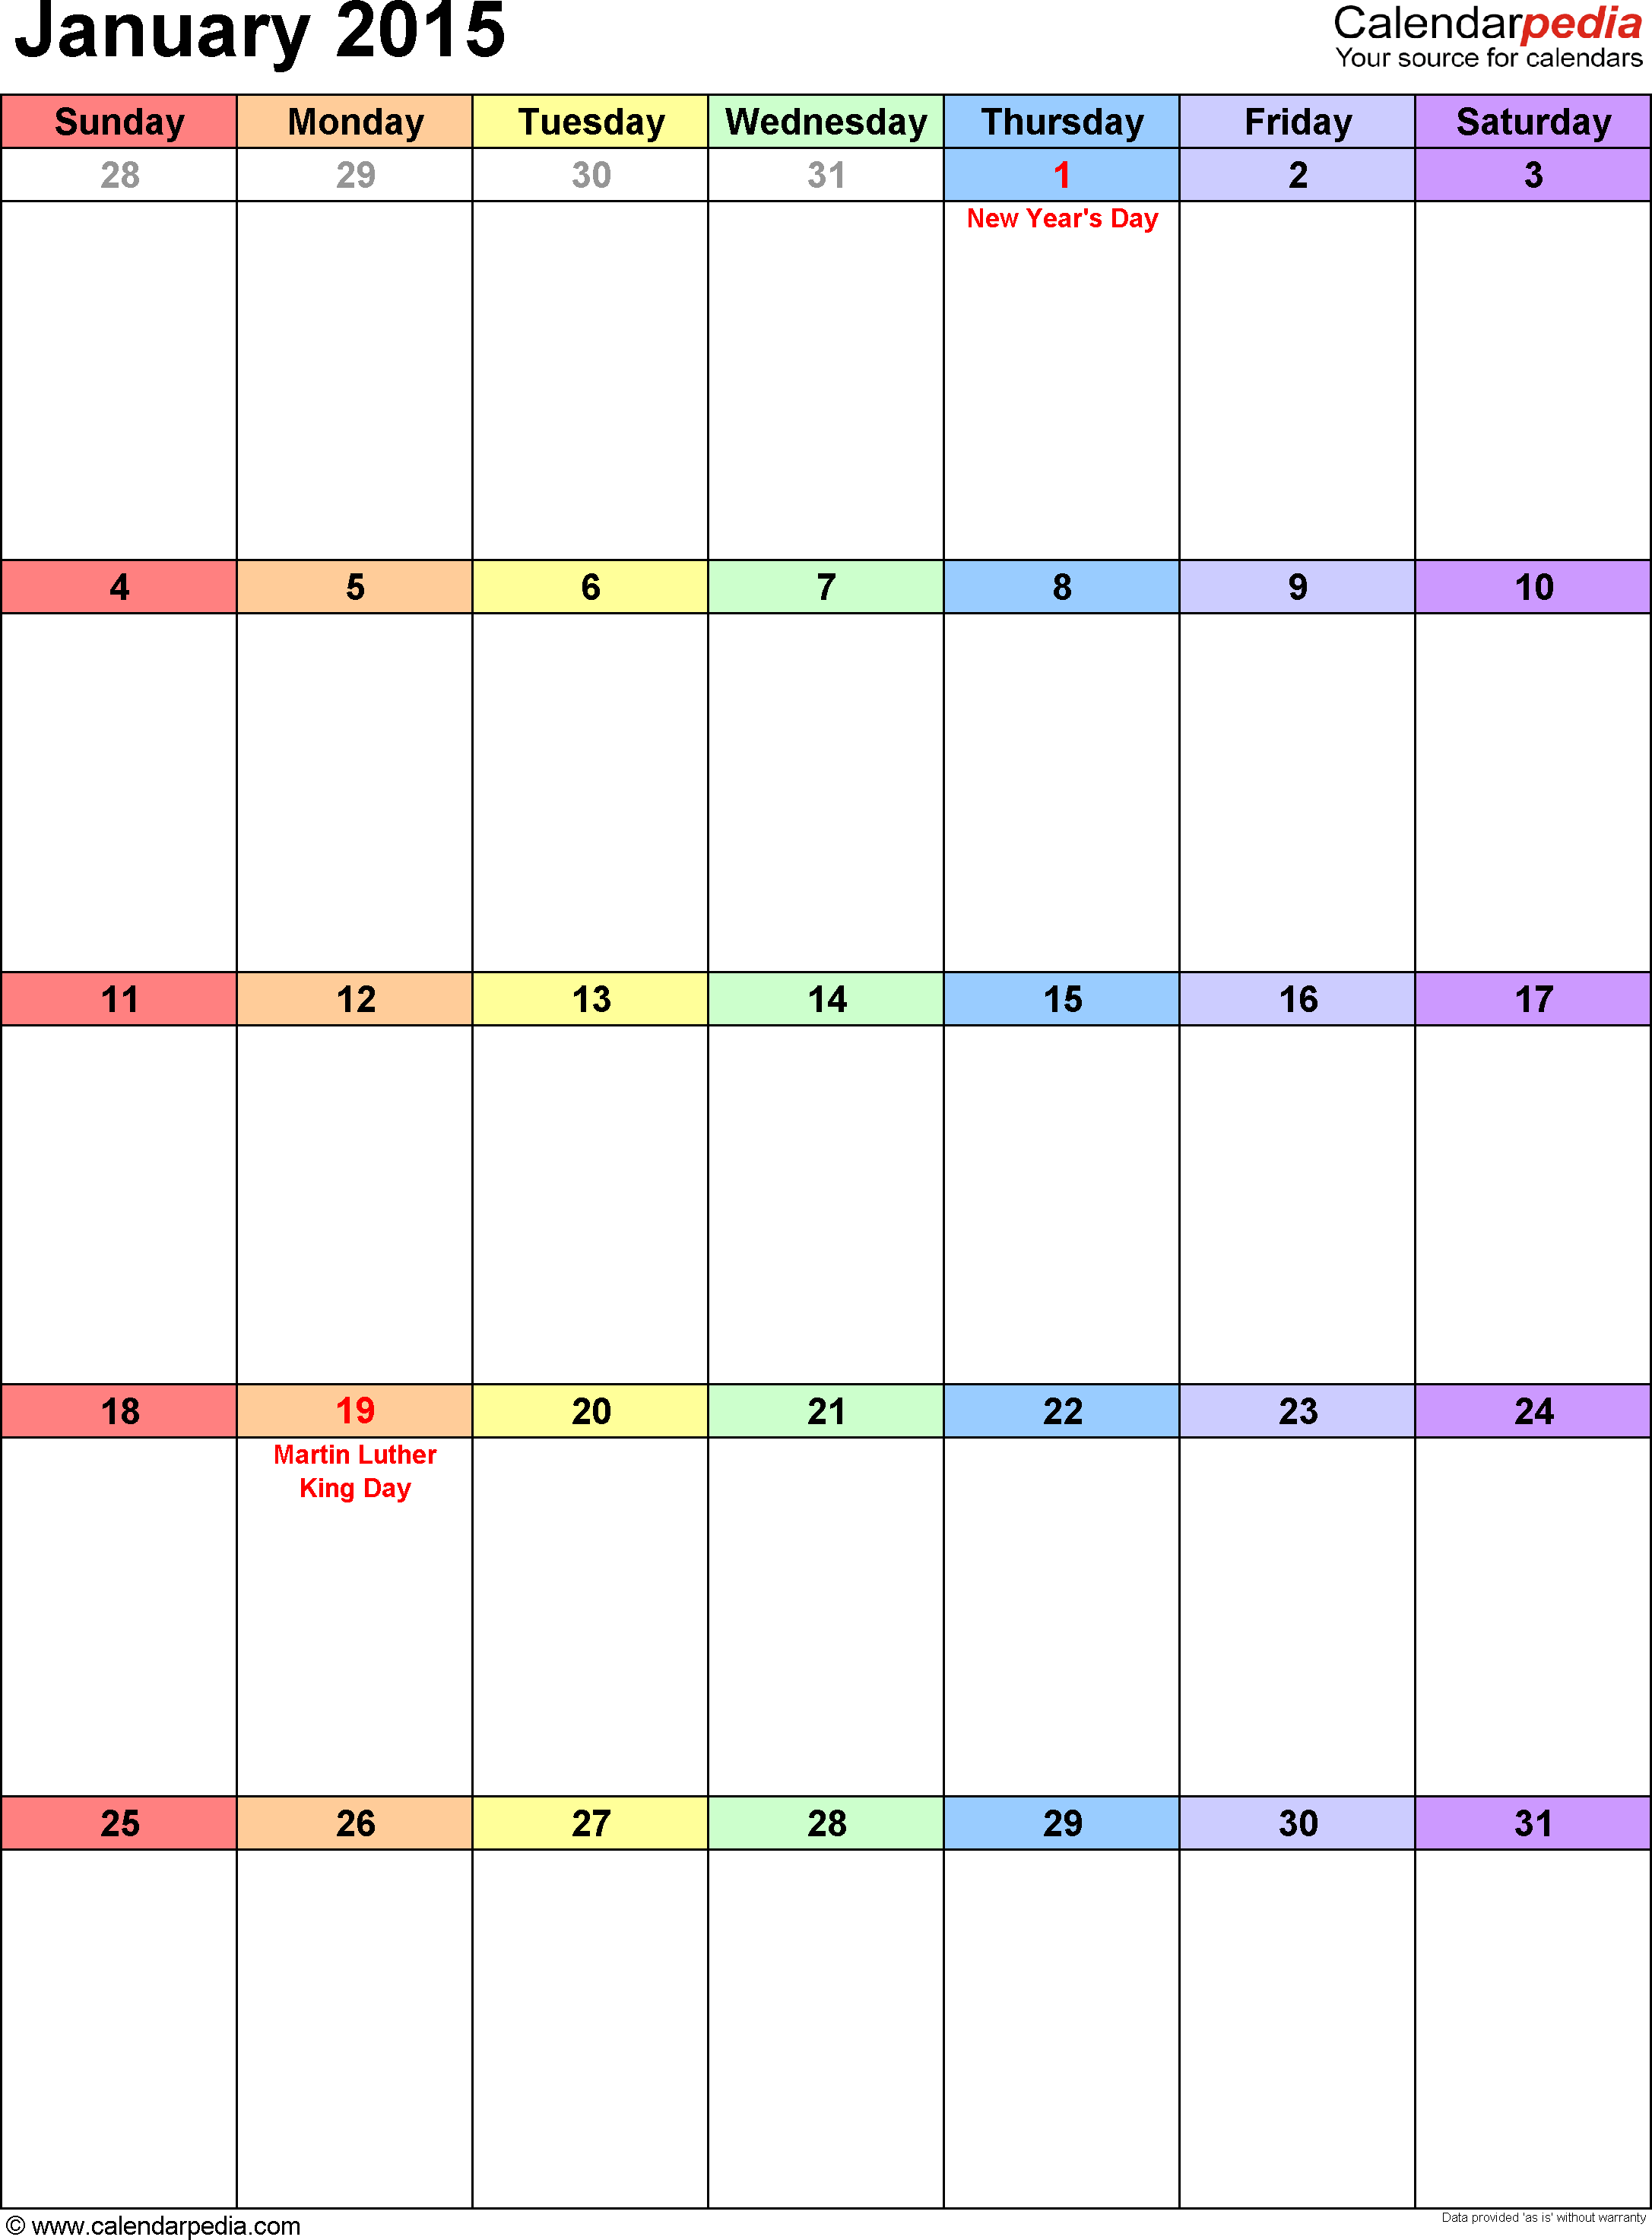 January 2015 calendar as printable Word, Excel & PDF templates